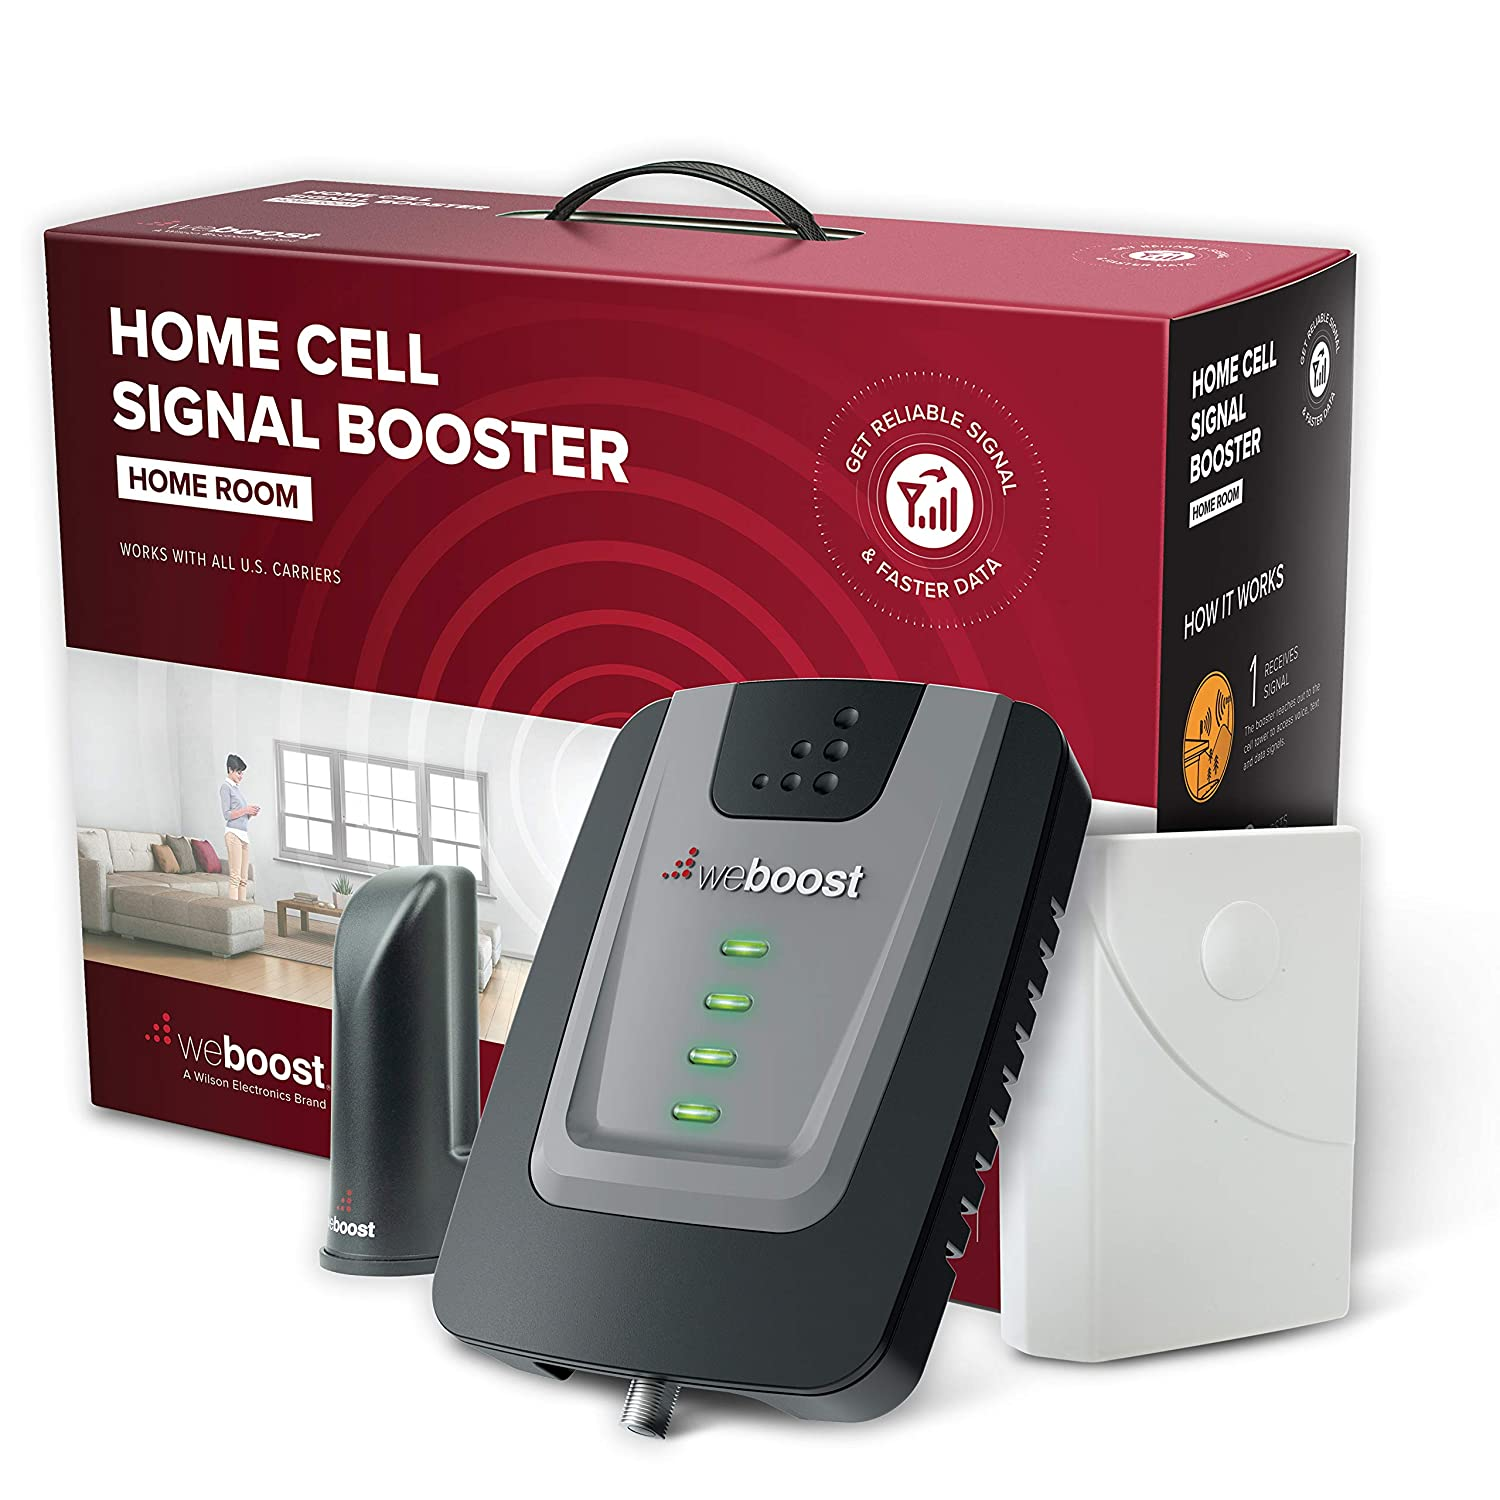 weBoost Home Room (472120) Cell Phone Signal Booster Kit | Up to 1,500 sq ft | All U.S. Carriers - Verizon, AT&T, T-Mobile, Sprint & More | FCC Approved